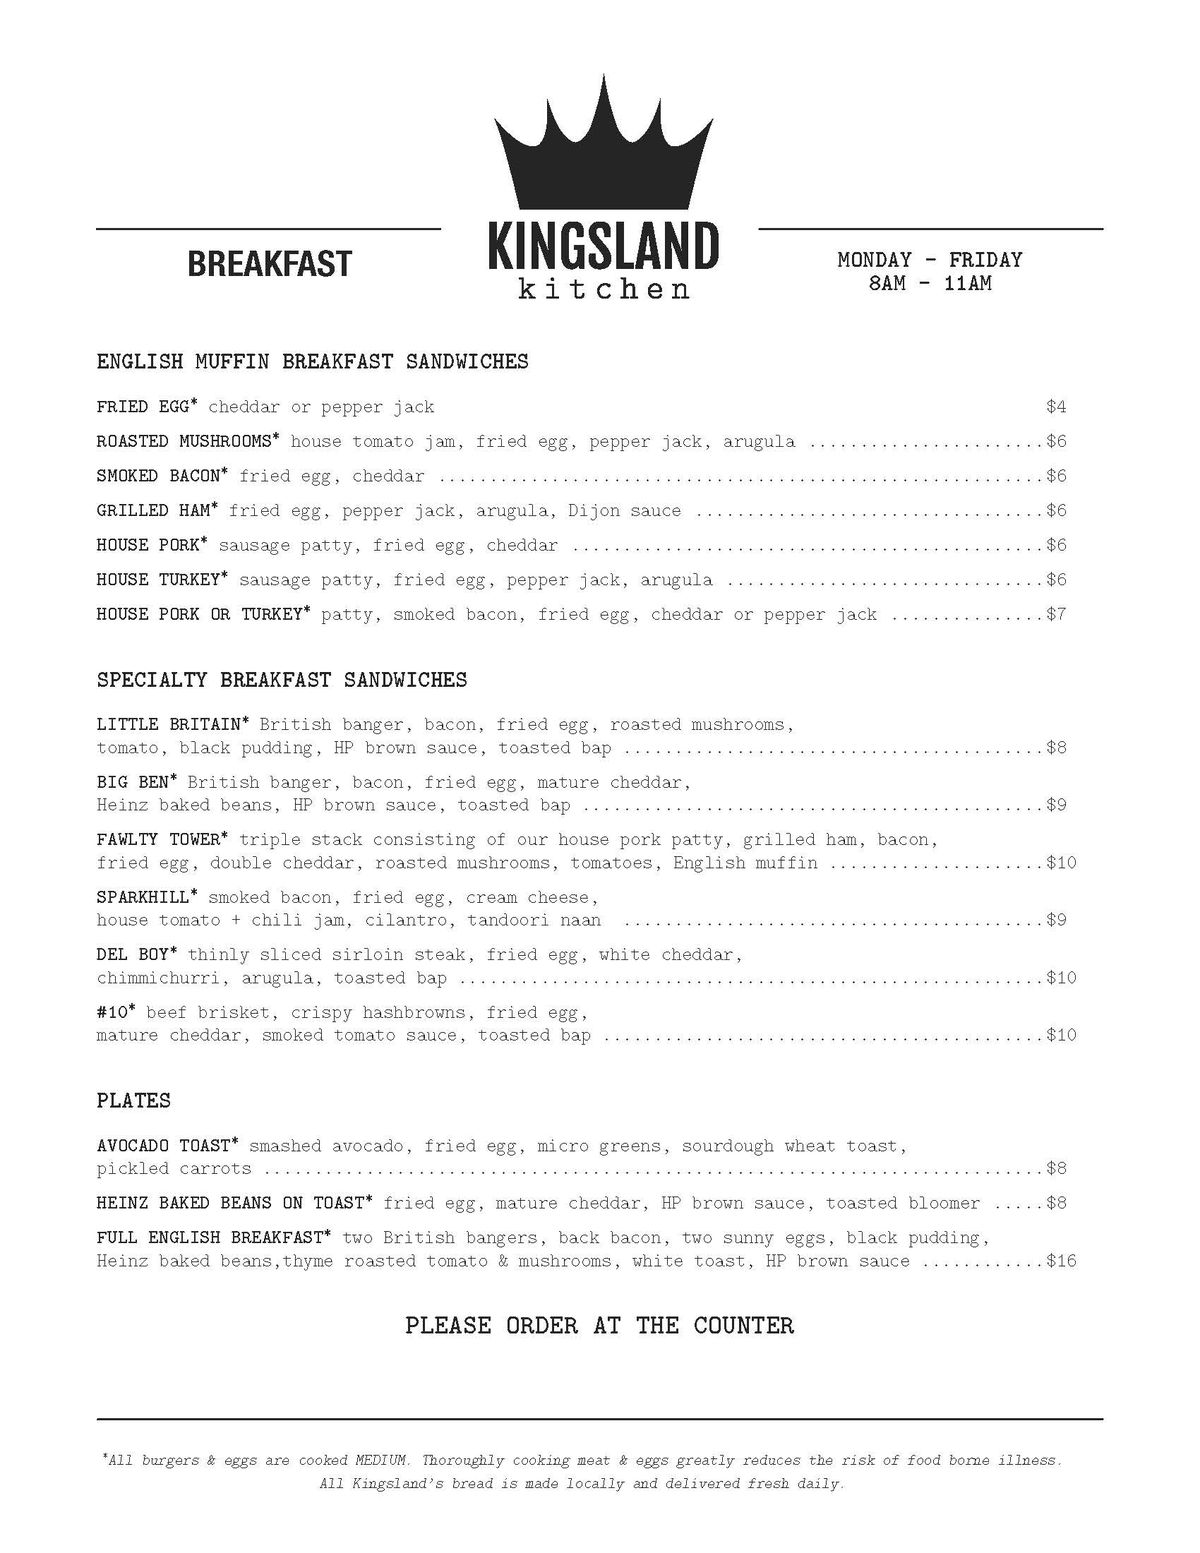 Kingsland Kitchen Finally Reveals Menus of Inspired British Plates ...